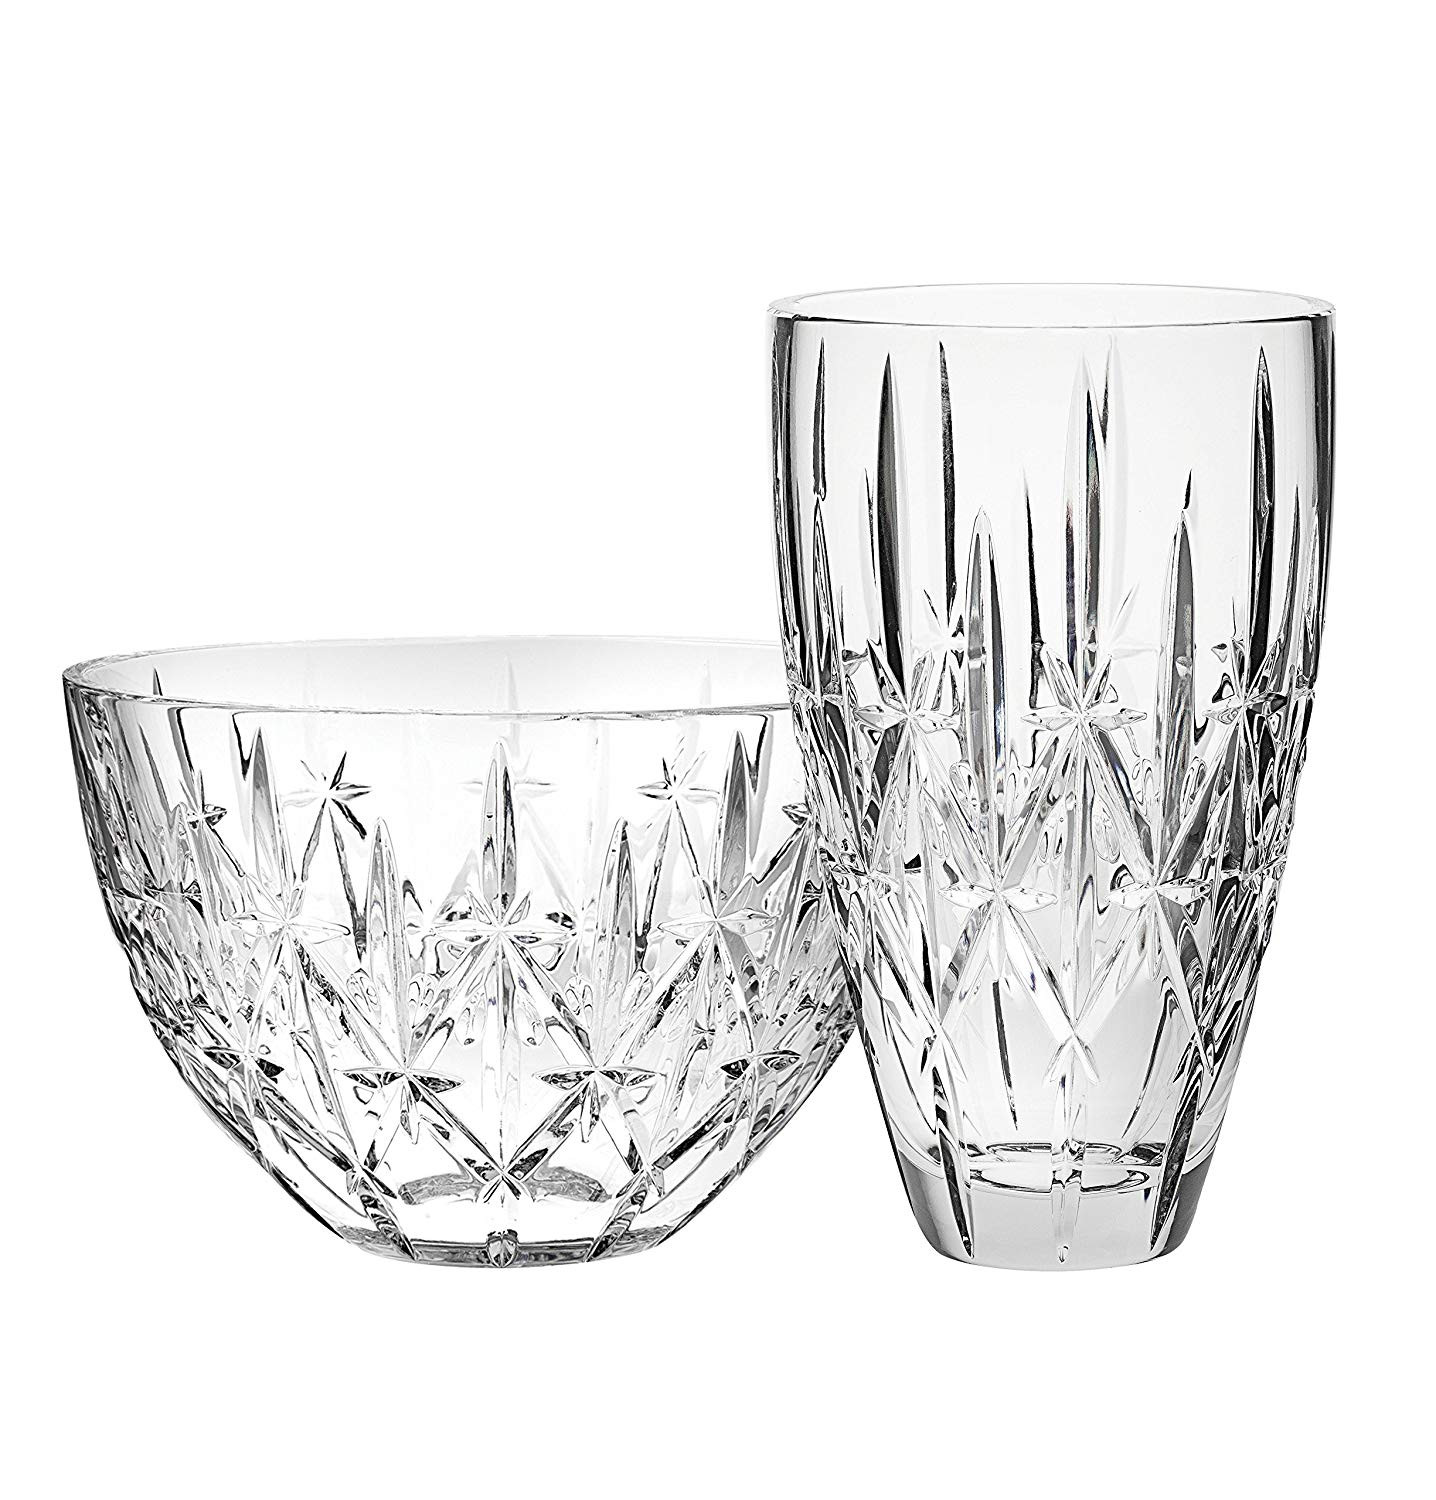 marquis by waterford newberry vase 10 of amazon com marquis by waterford sparkle bowl 9 home kitchen regarding 91ze4xzhccl sl1500